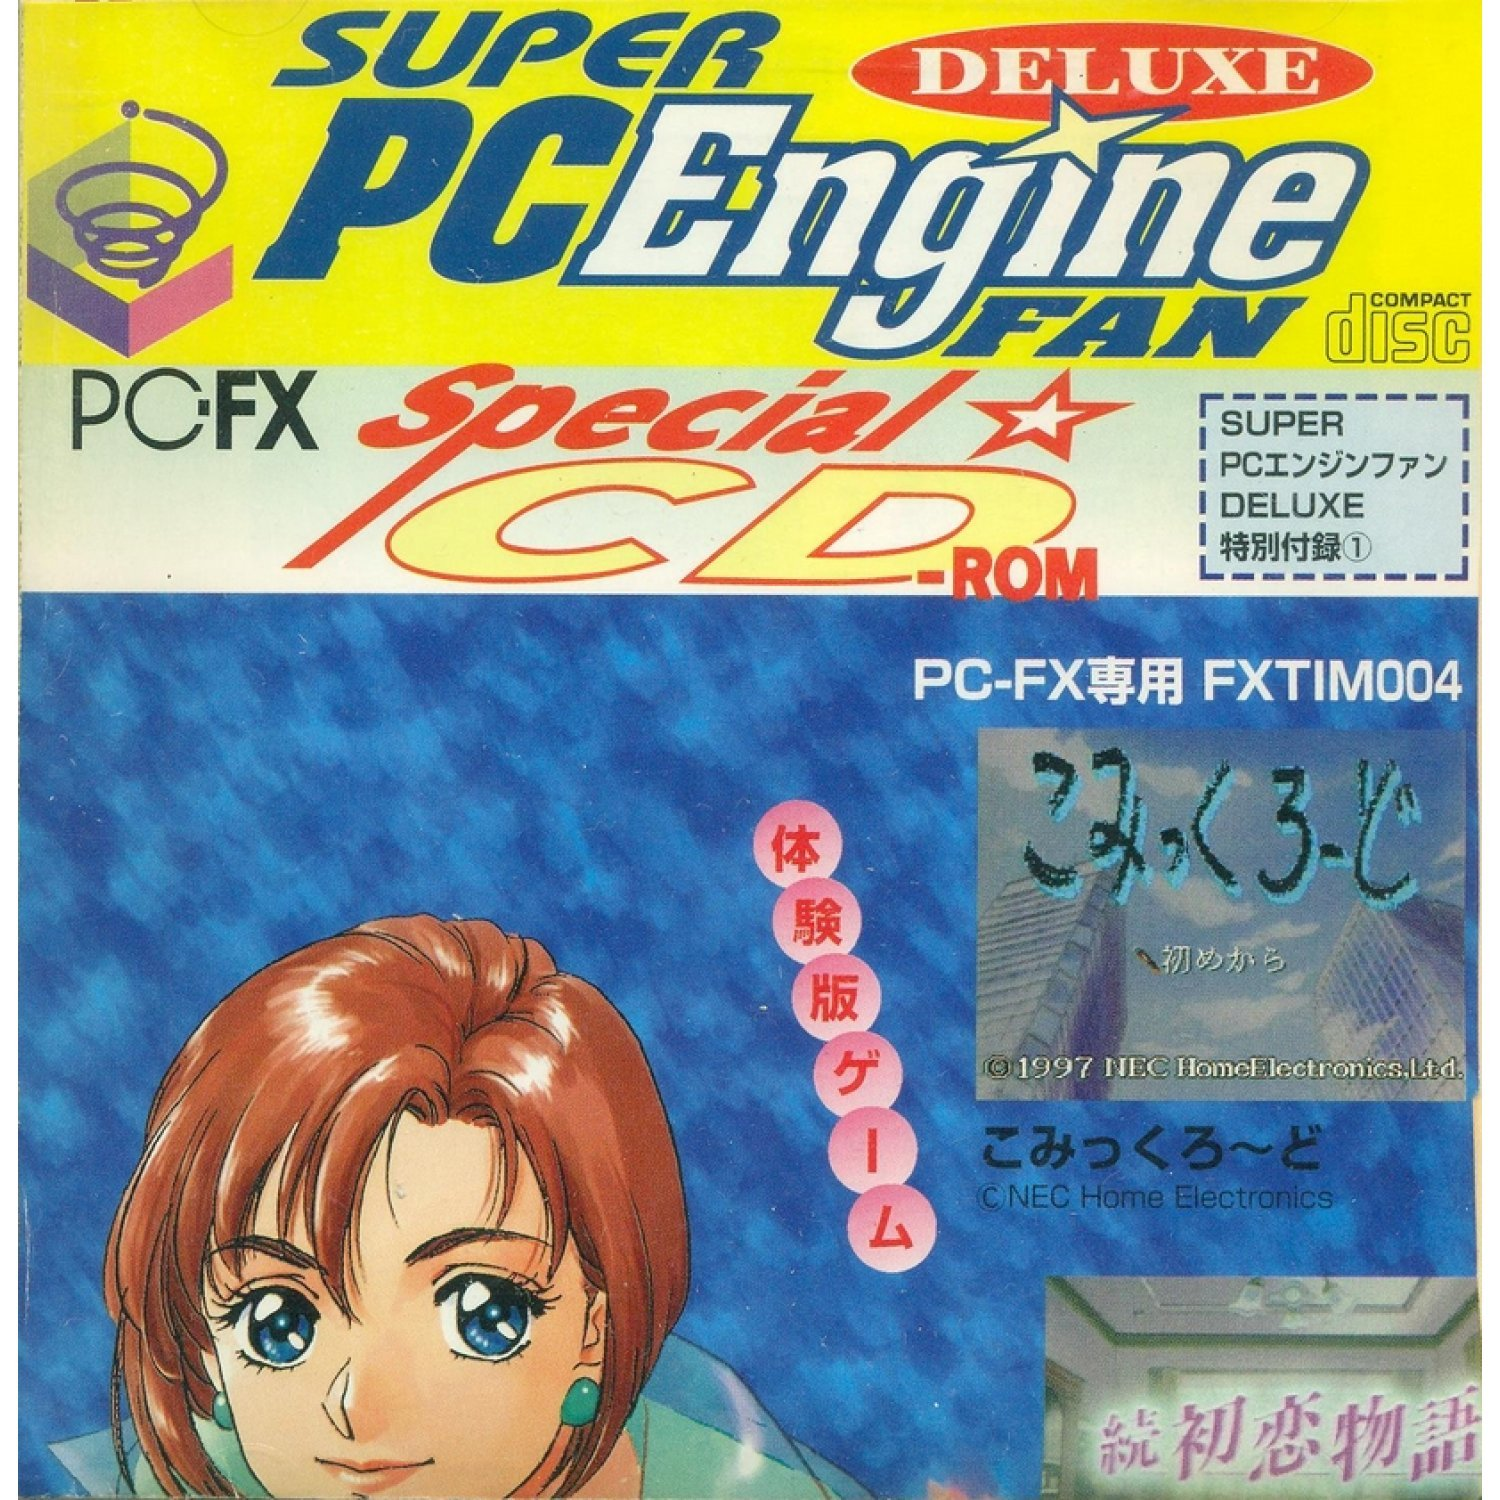 Super PC-Engine Fan Deluxe PC-FX Special CD-ROM